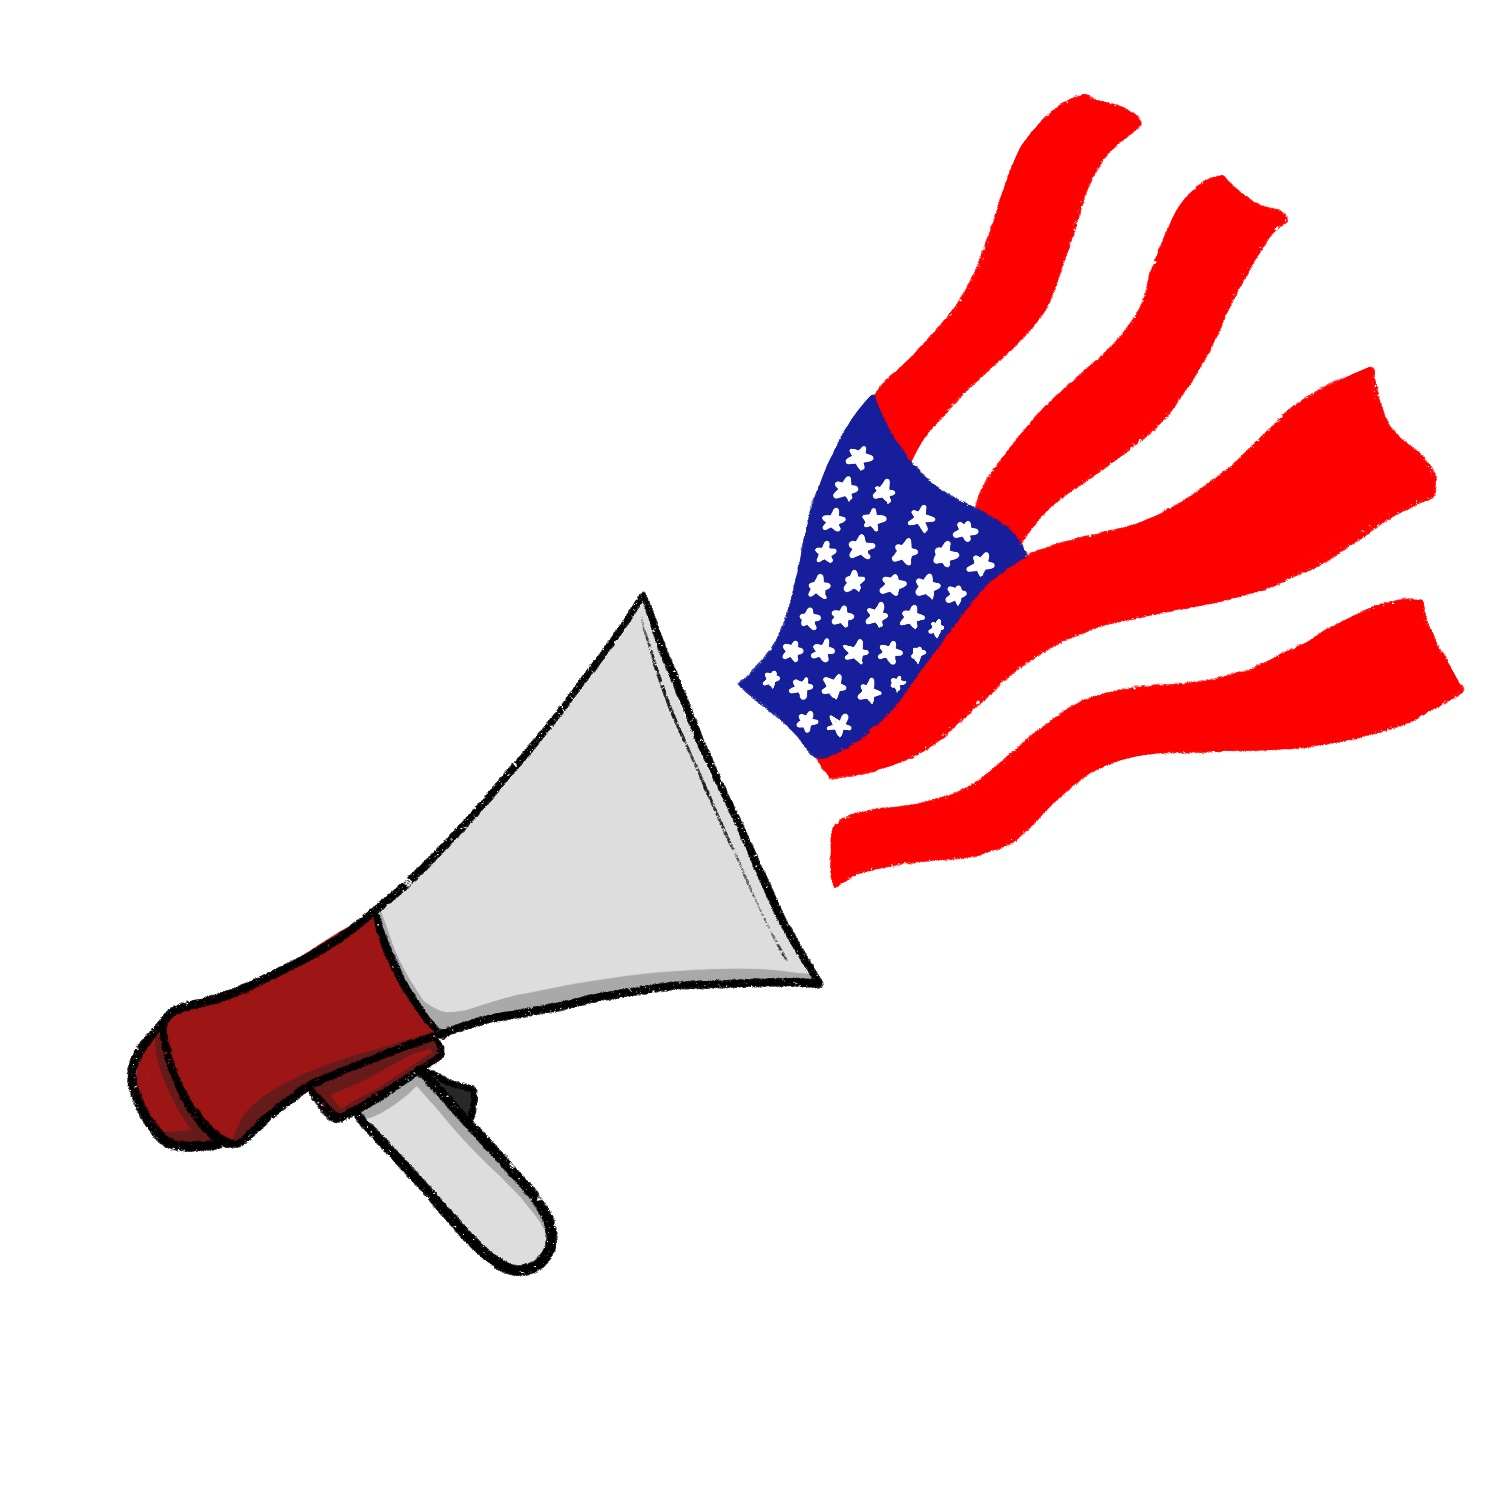 An American flag projecting from a megaphone